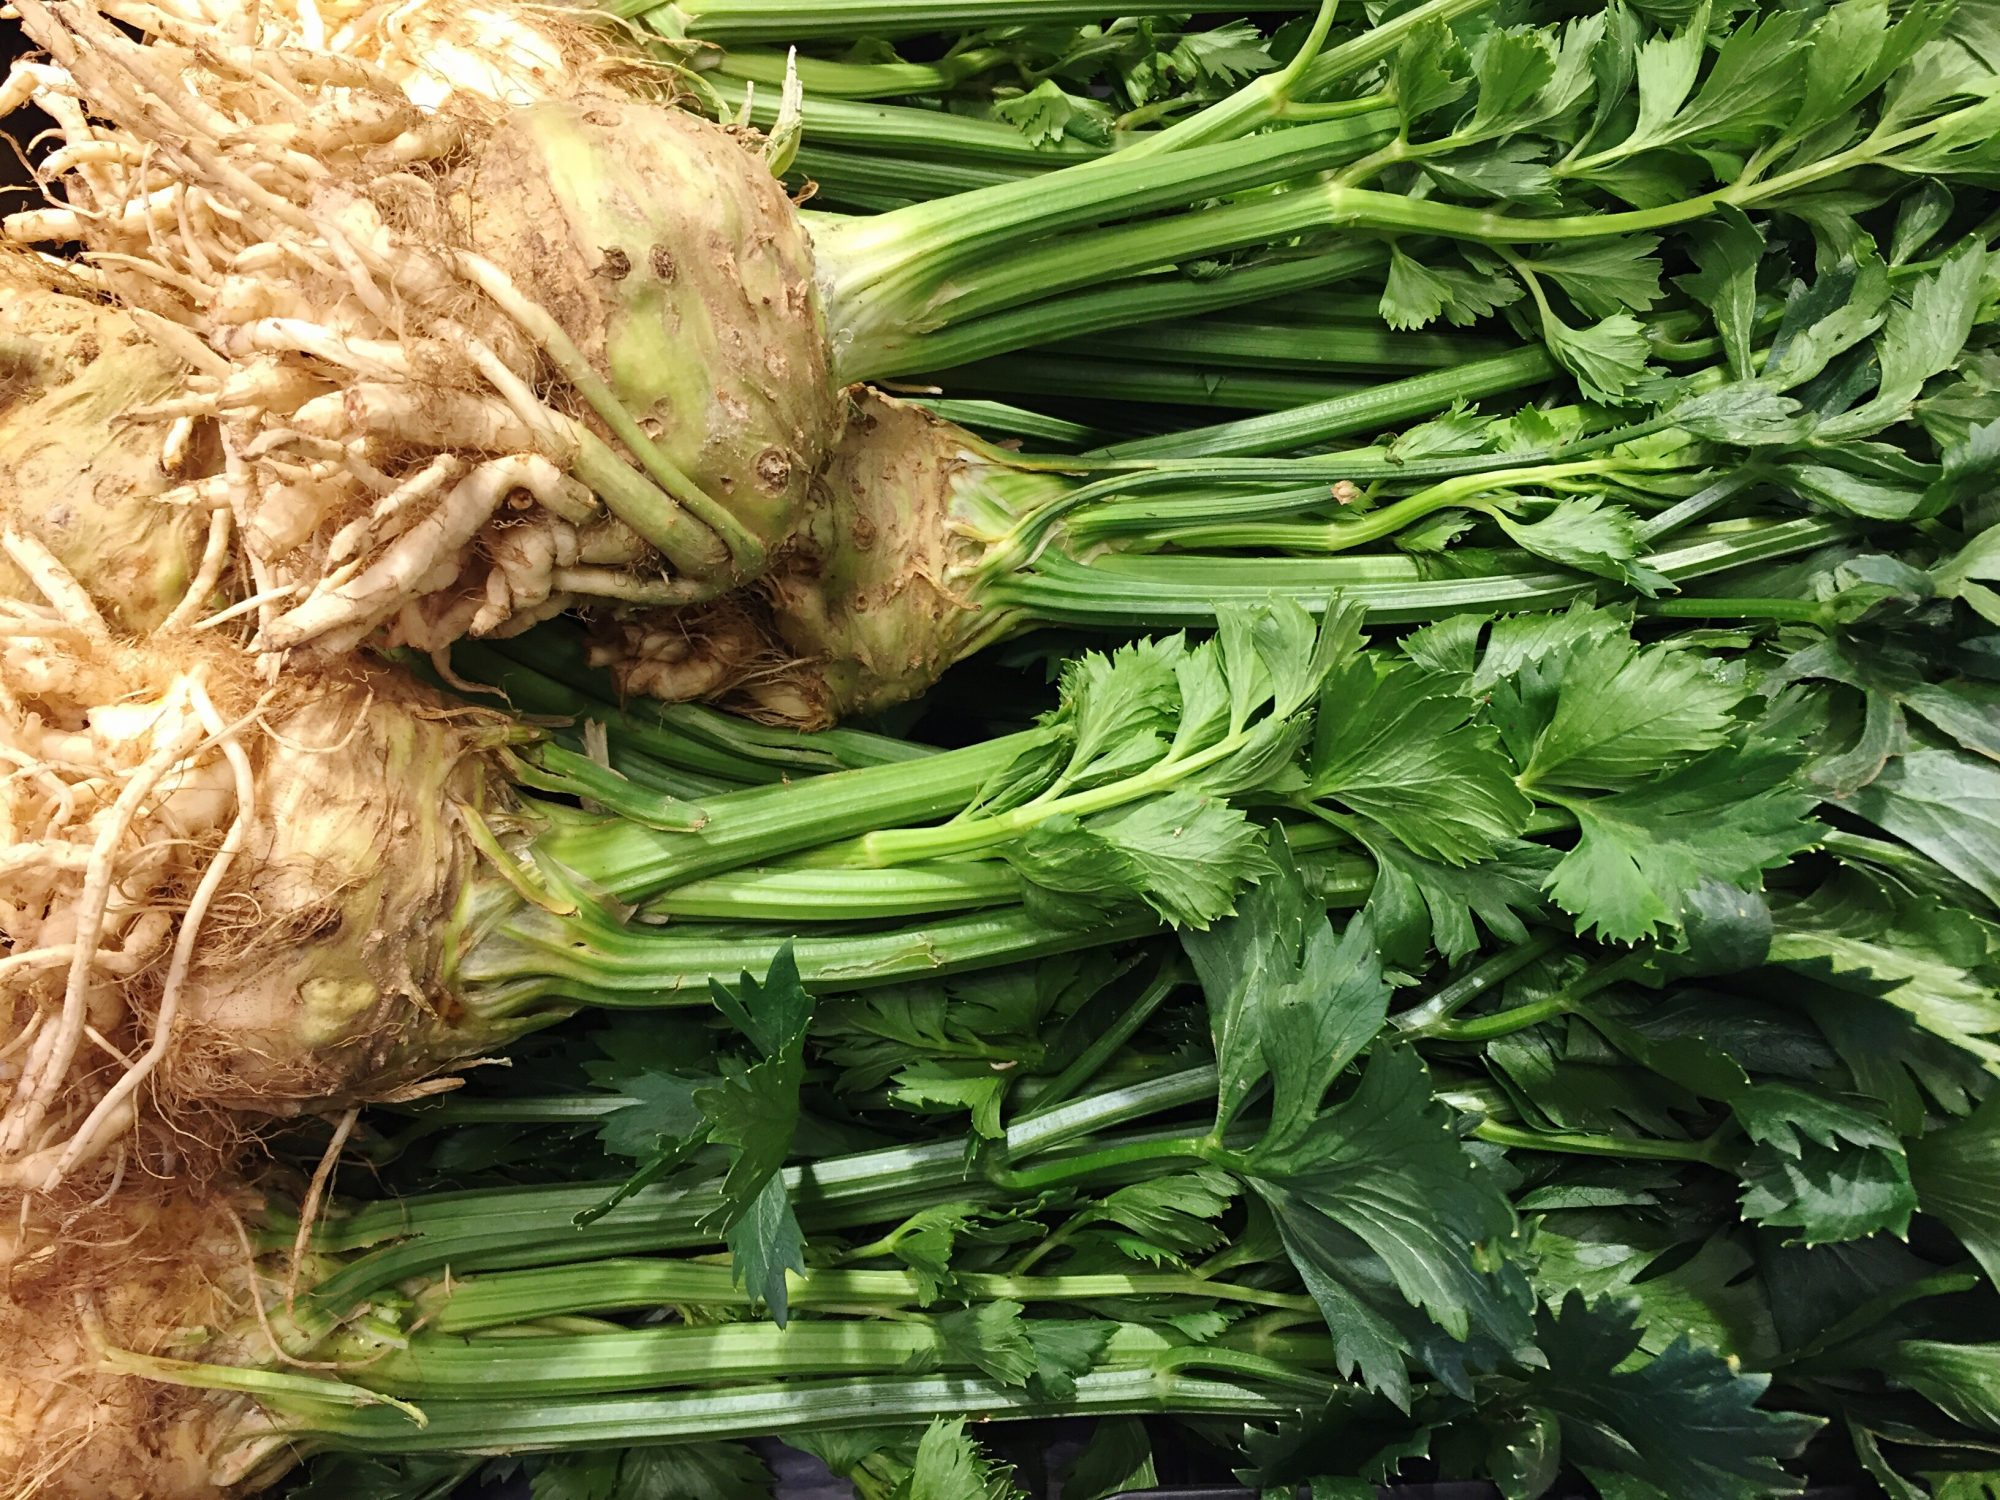 Celeriac with Stalks Getty 11/26/19